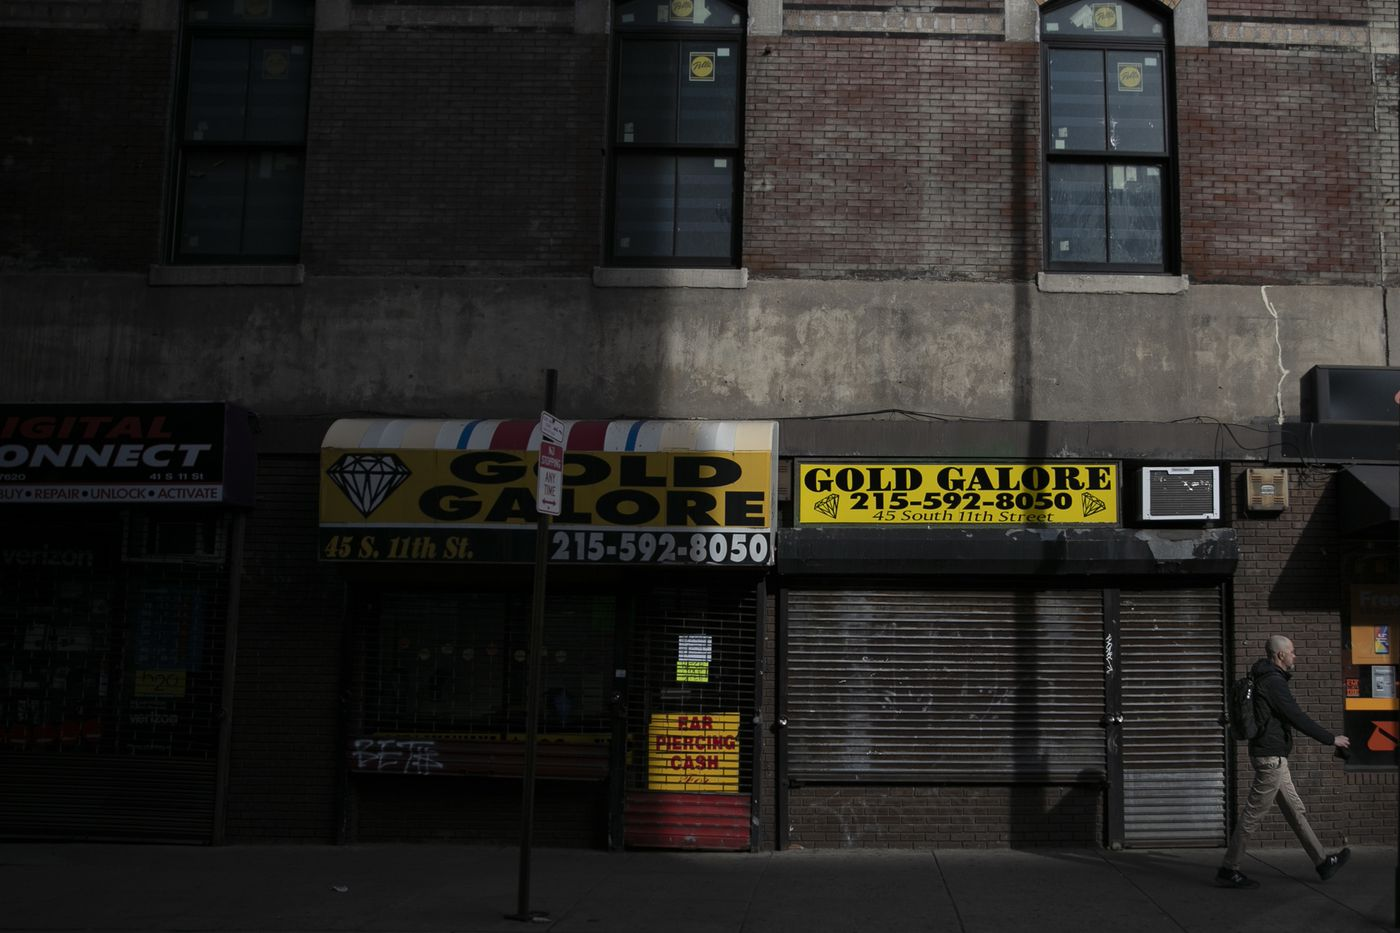 Shuttered businesses are seen along 11th street towards Chestnut street in Center City on Tuesday, March 24, 2020. Non-essential businesses are closed and a stay-at-home order has been issued by the city, with the exception of those working for life-sustaining businesses, due to the spread of the coronavirus.